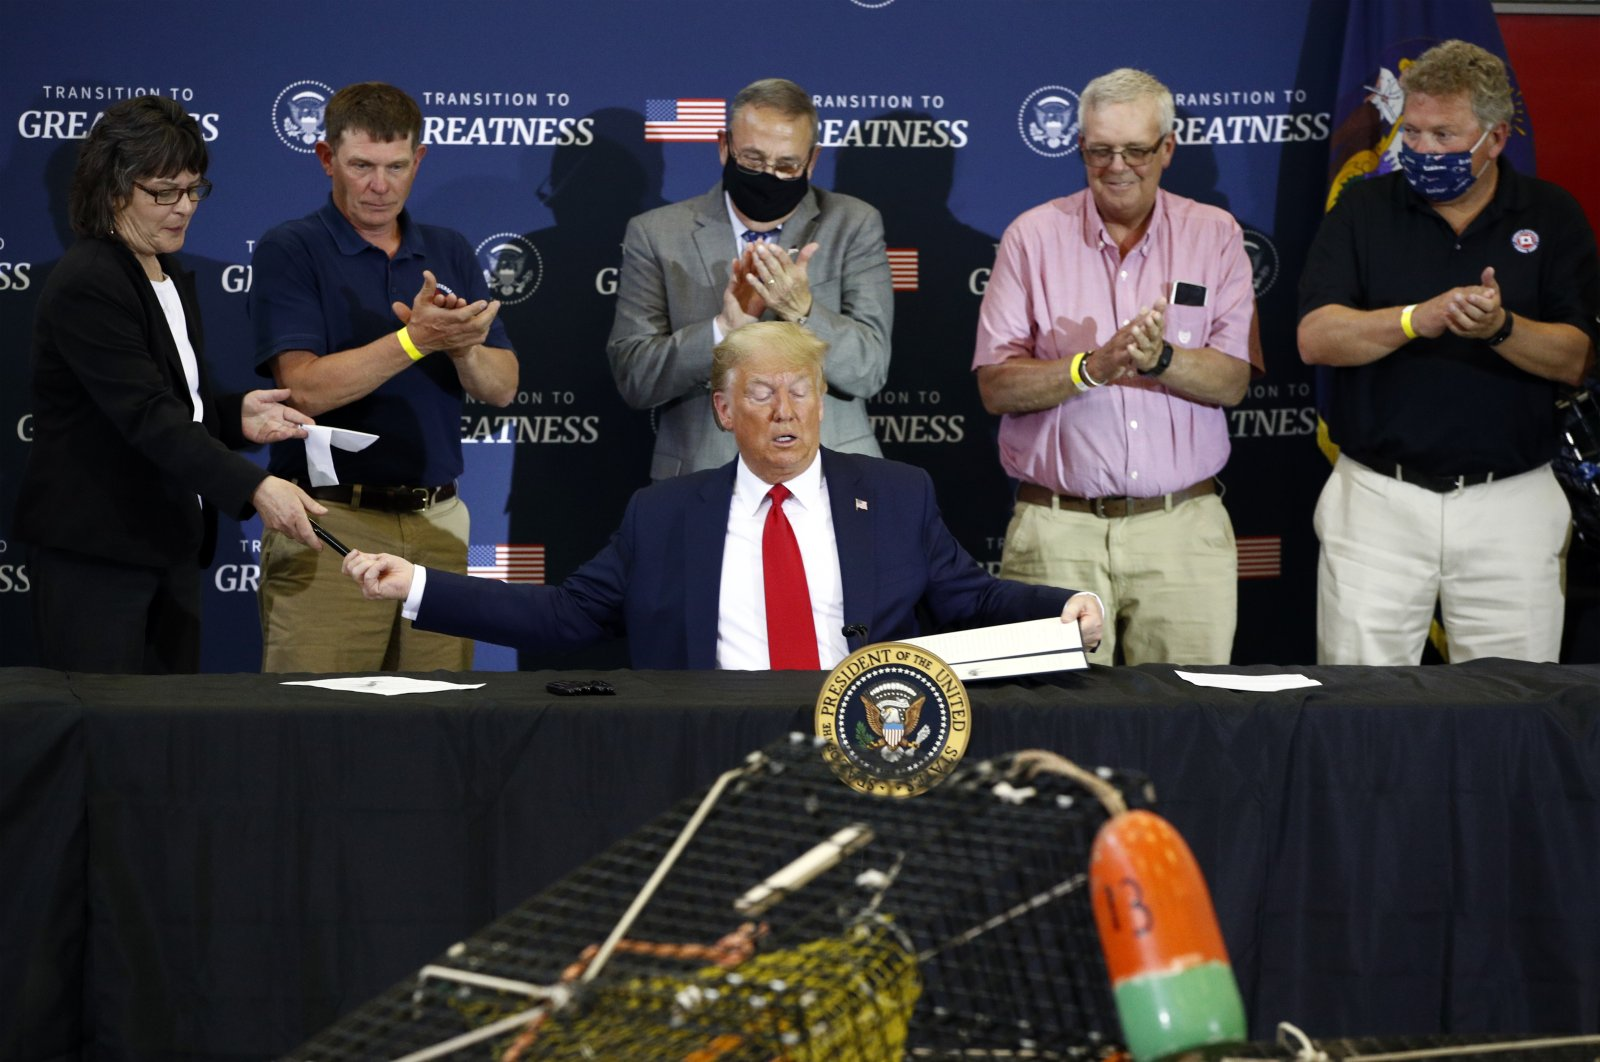 President Donald Trump hands pens out after signing an executive order on commercial fishing after speaking at a roundtable discussion with commercial fishermen at Bangor International Airport in Bangor, Maine, June 5, 2020. (AP Photo)